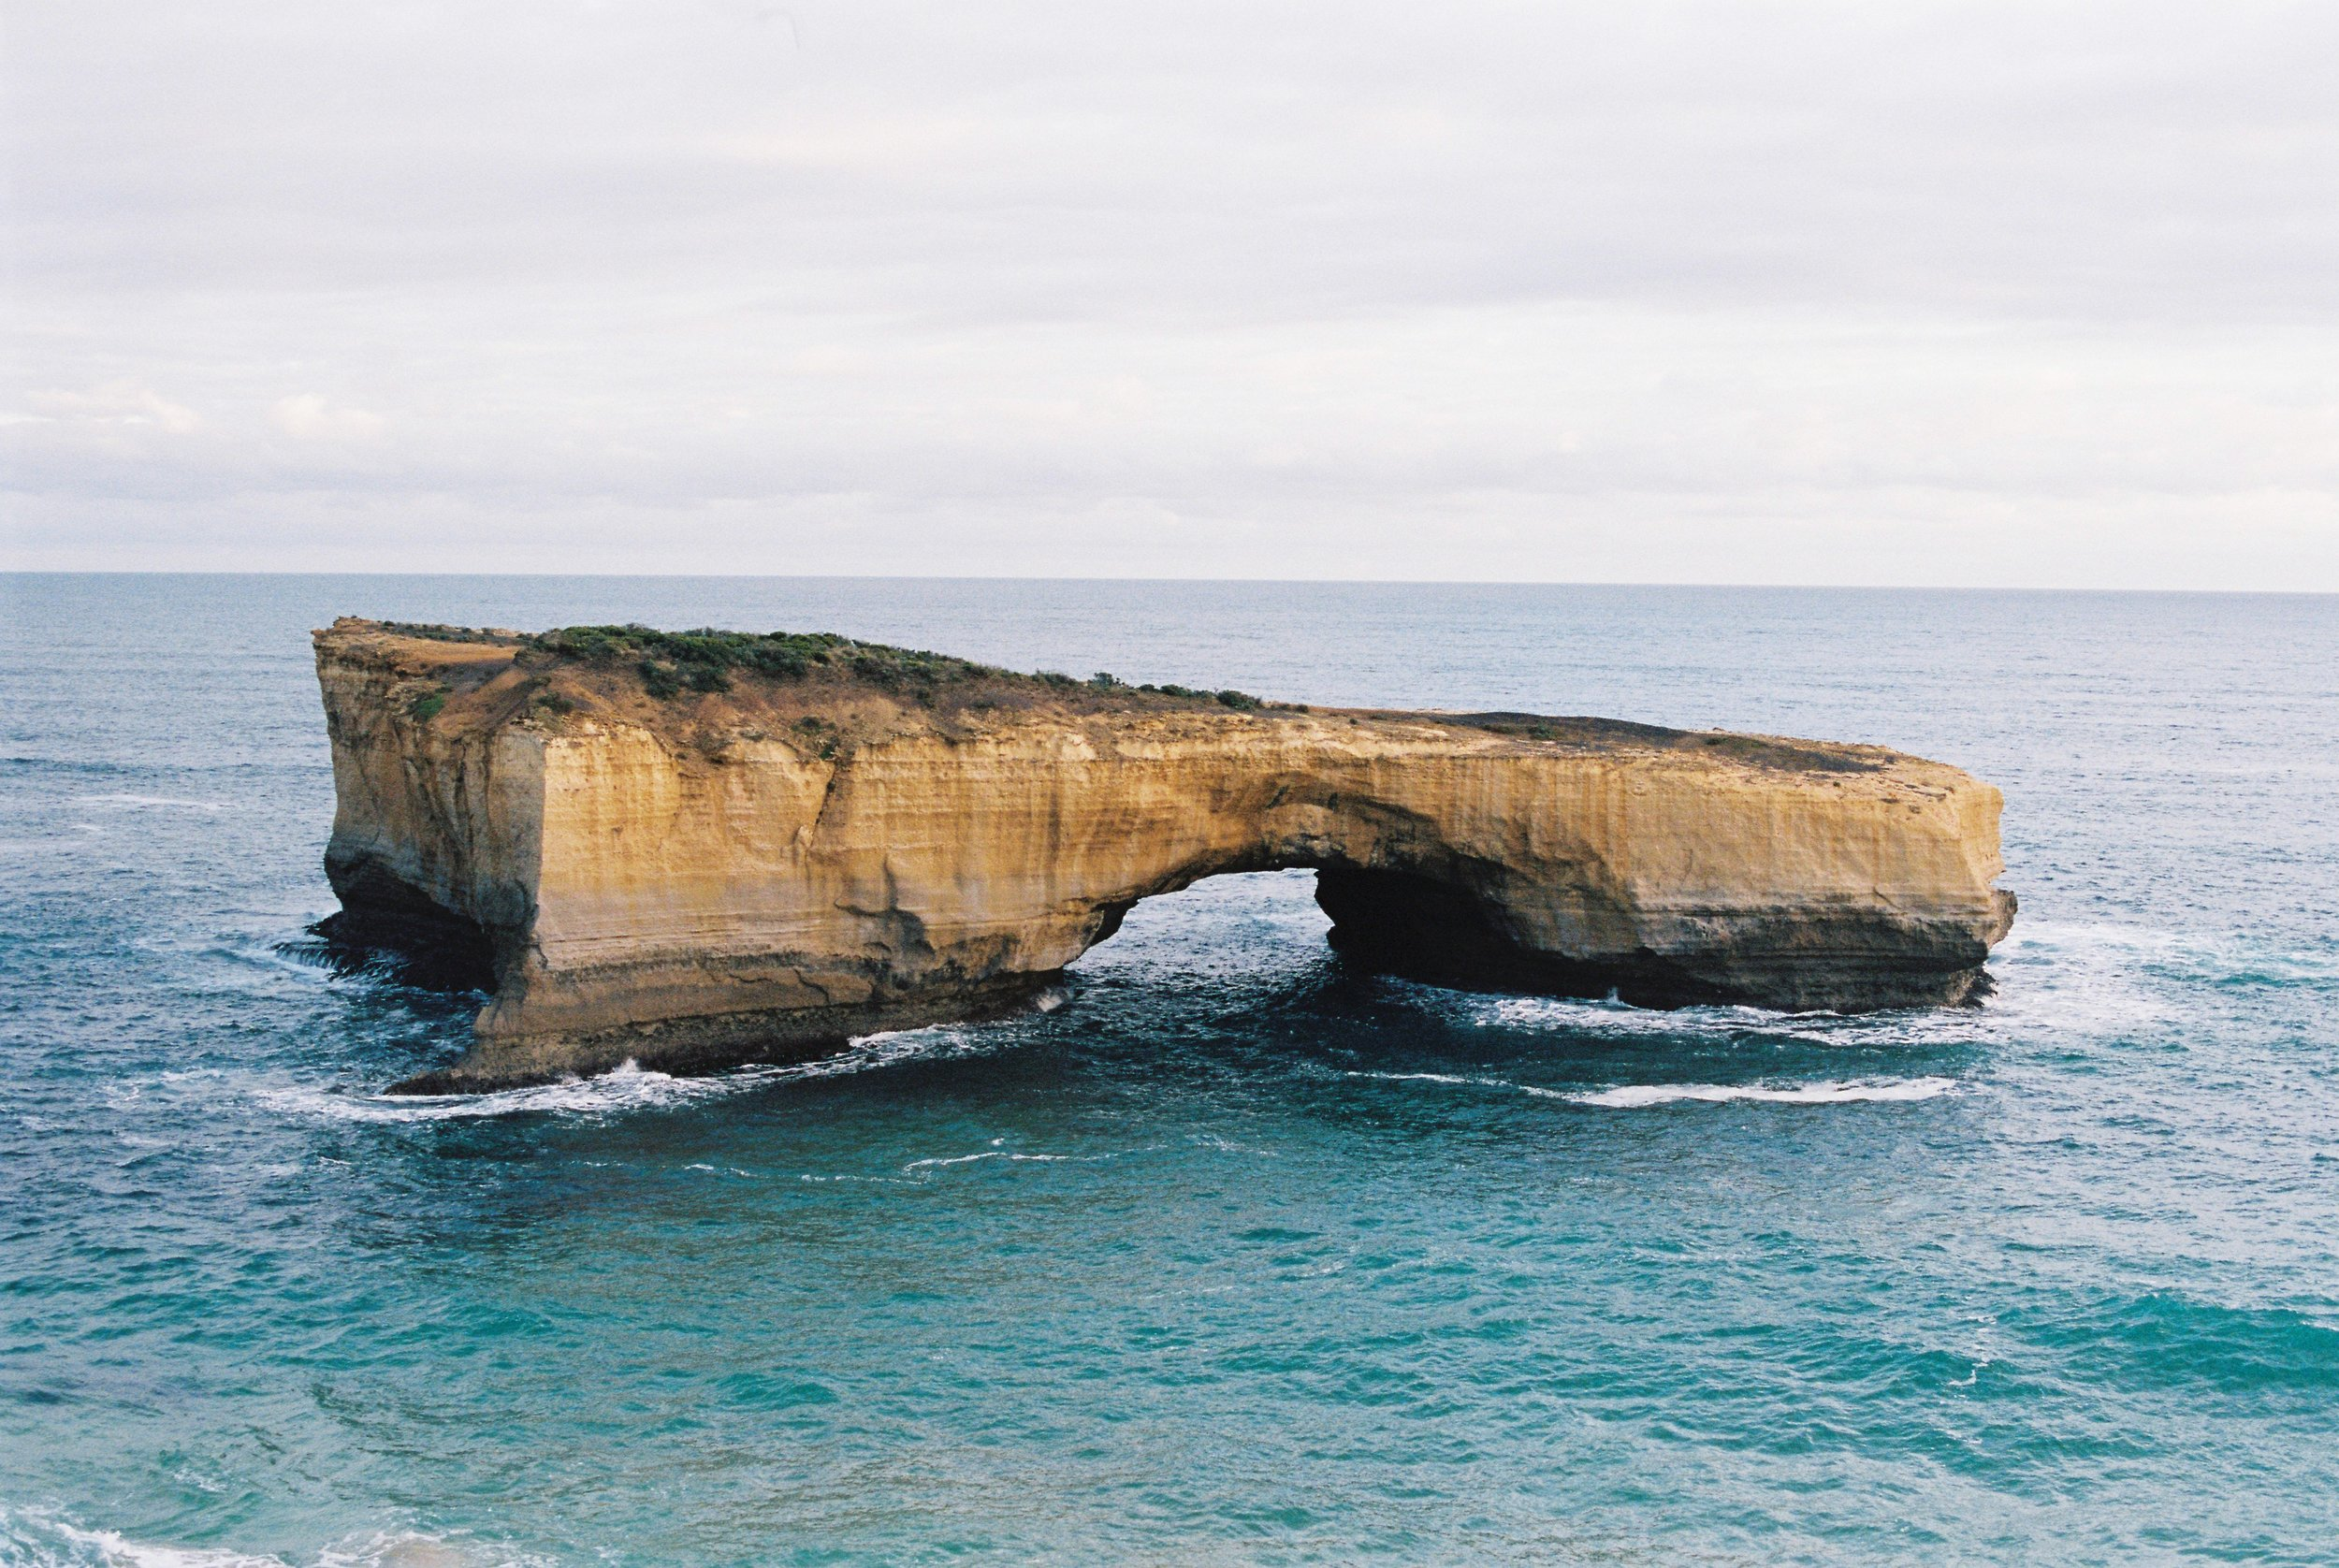 """GREAT OCEAN ROAD - """"I note how bright the water is under a bleak sky. Ultramarine. My hair whips in the wind. Mum says we're going to go get a cup of tea in a café in town. I turn away from the wind, and the world is instantly hushed."""""""